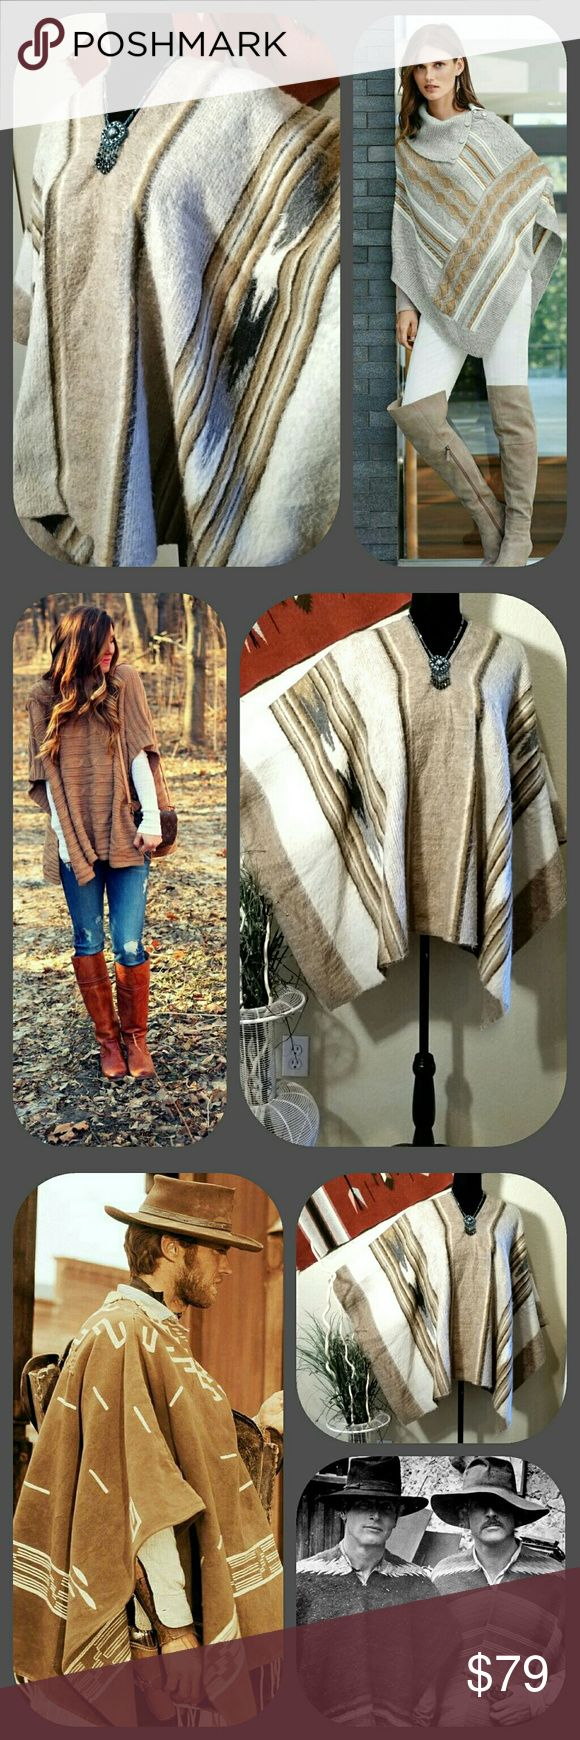 """Peruvian Wool Blanket Festival Poncho Unisex Peruvian Wool Blanket Poncho.  Listed as men's, but is truly unisex.  Western pattern in beige and grays.   For guys, Hang Em High Clint Eastwood,  Butch Cassidy and the Sundance Kid. For the ladies, Boho, Hippie, Camping,  Festival ...  One size fits most. Measures 44"""" across shoulders cuff to cuff;   Shoulder to hem 25"""" Peruvian Handmade Jackets & Coats"""